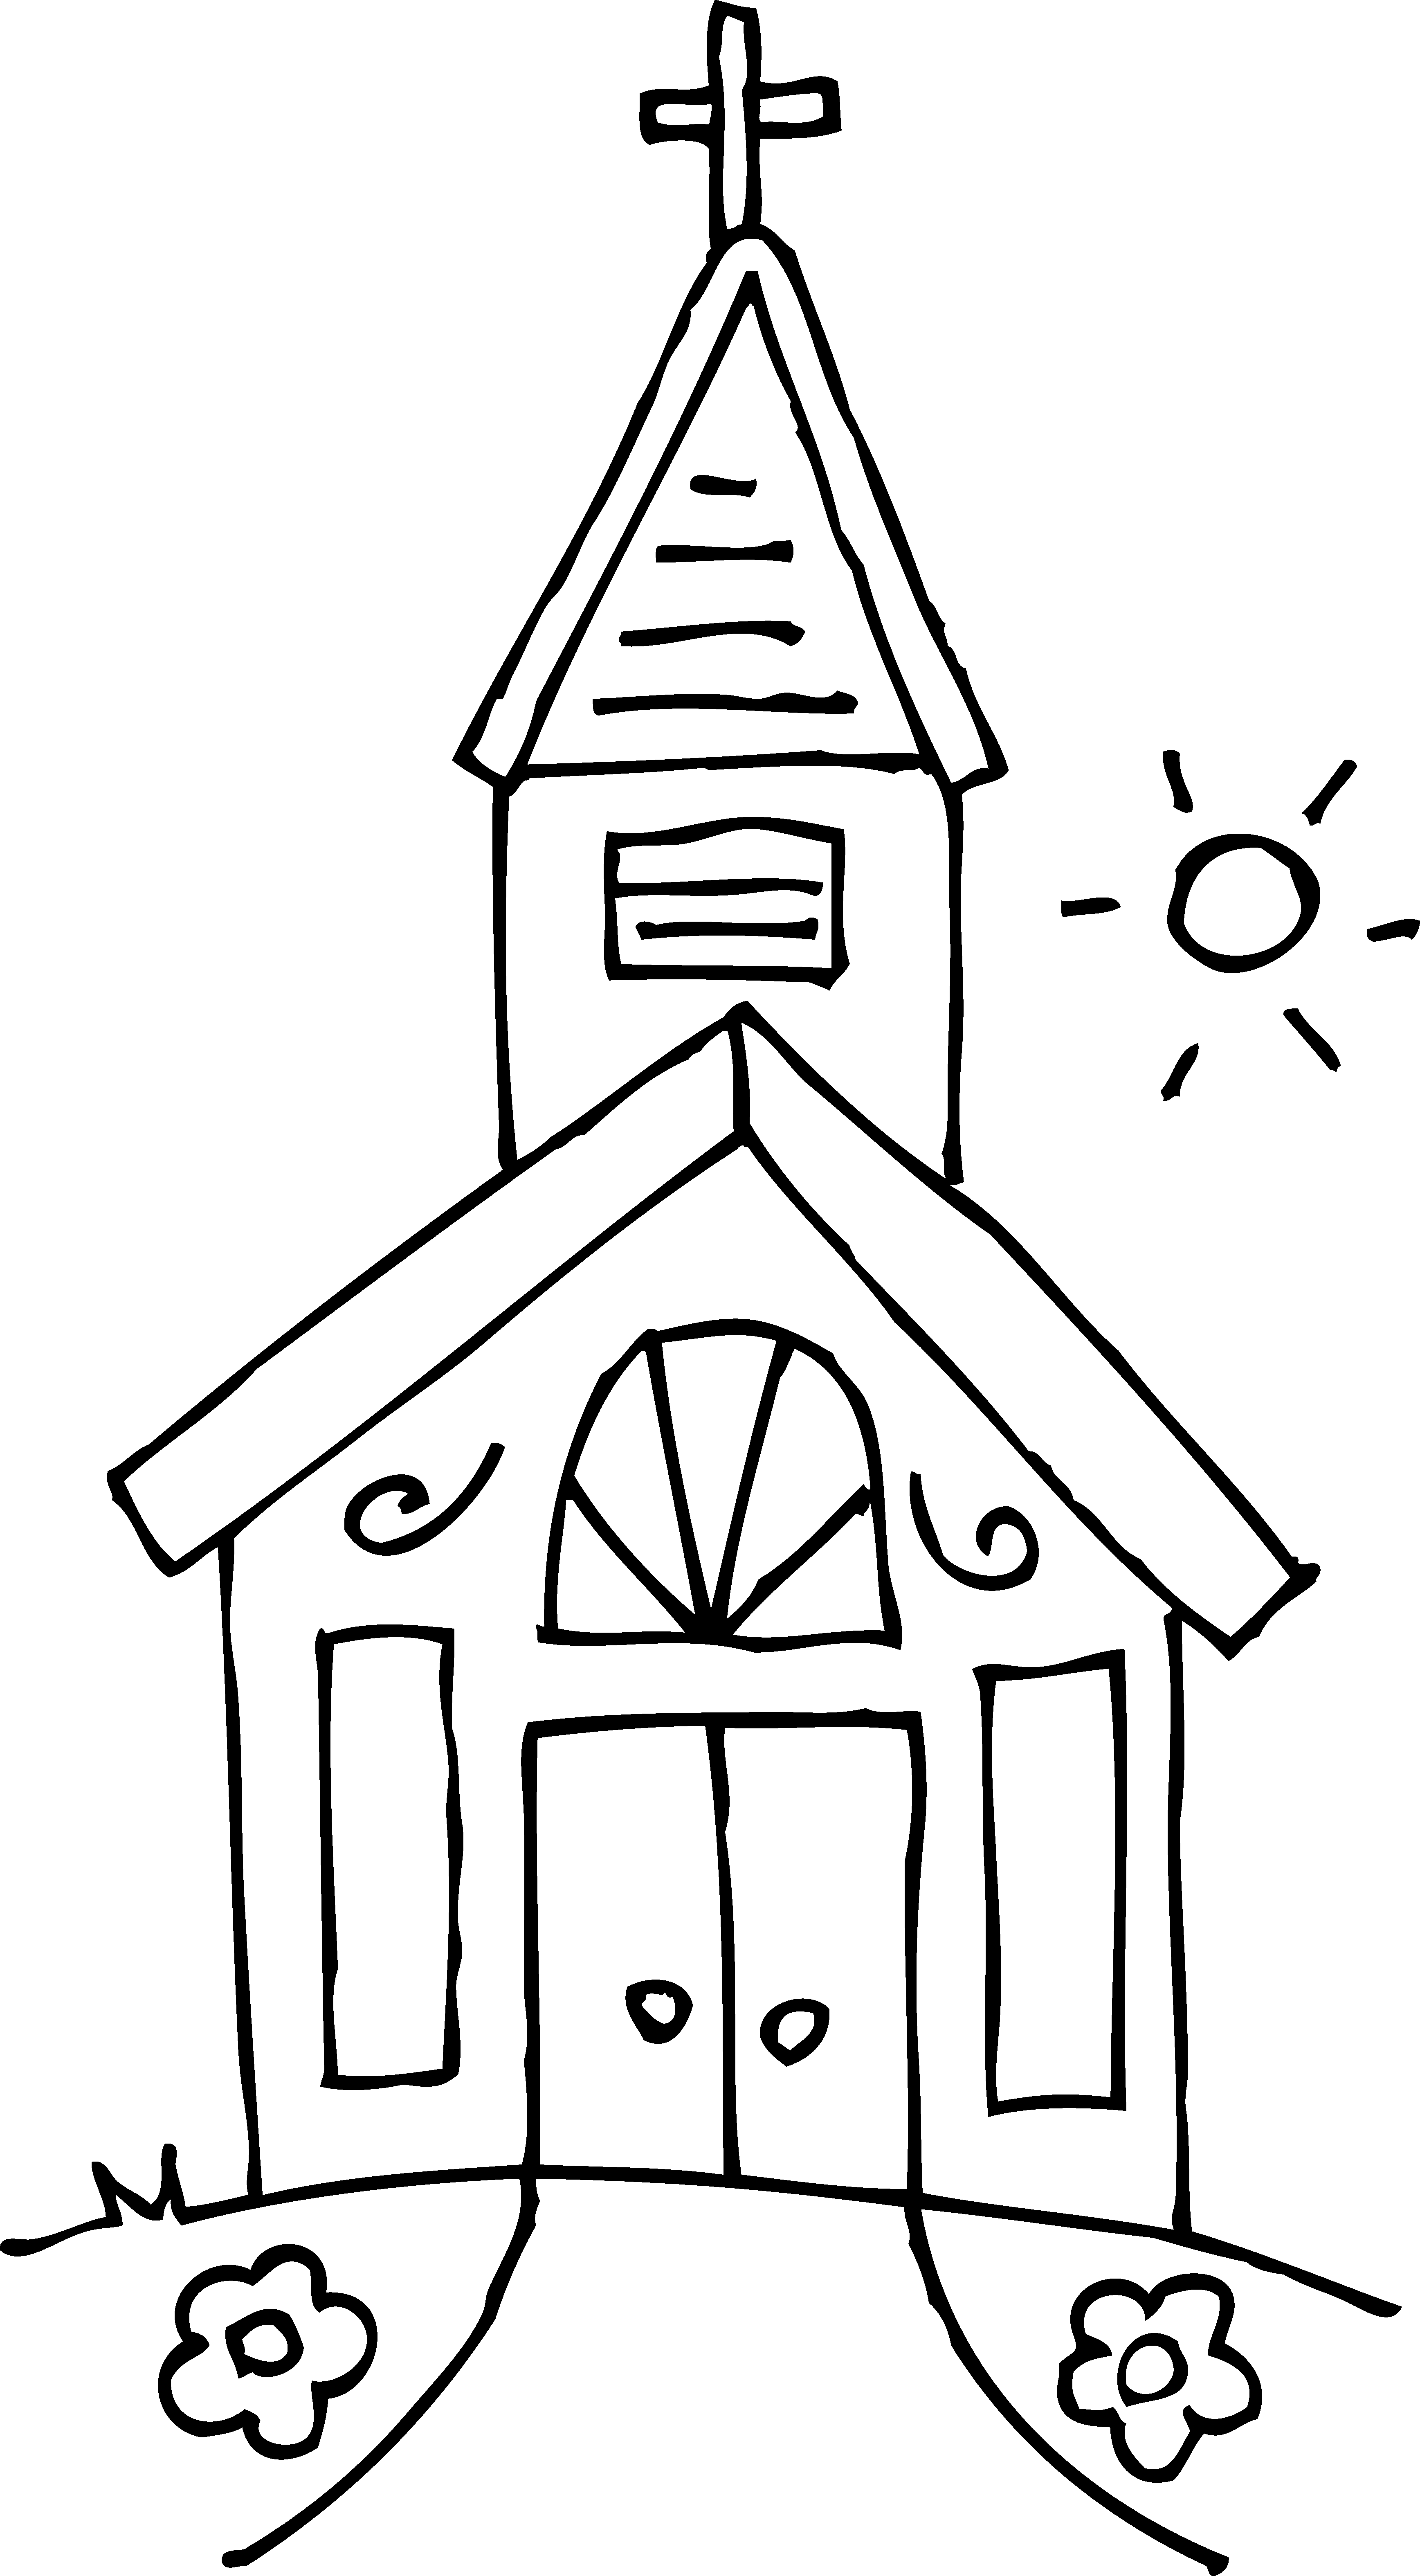 Home Renovation Clip Art Black And White - House - Free Transparent PNG  Clipart Images Download